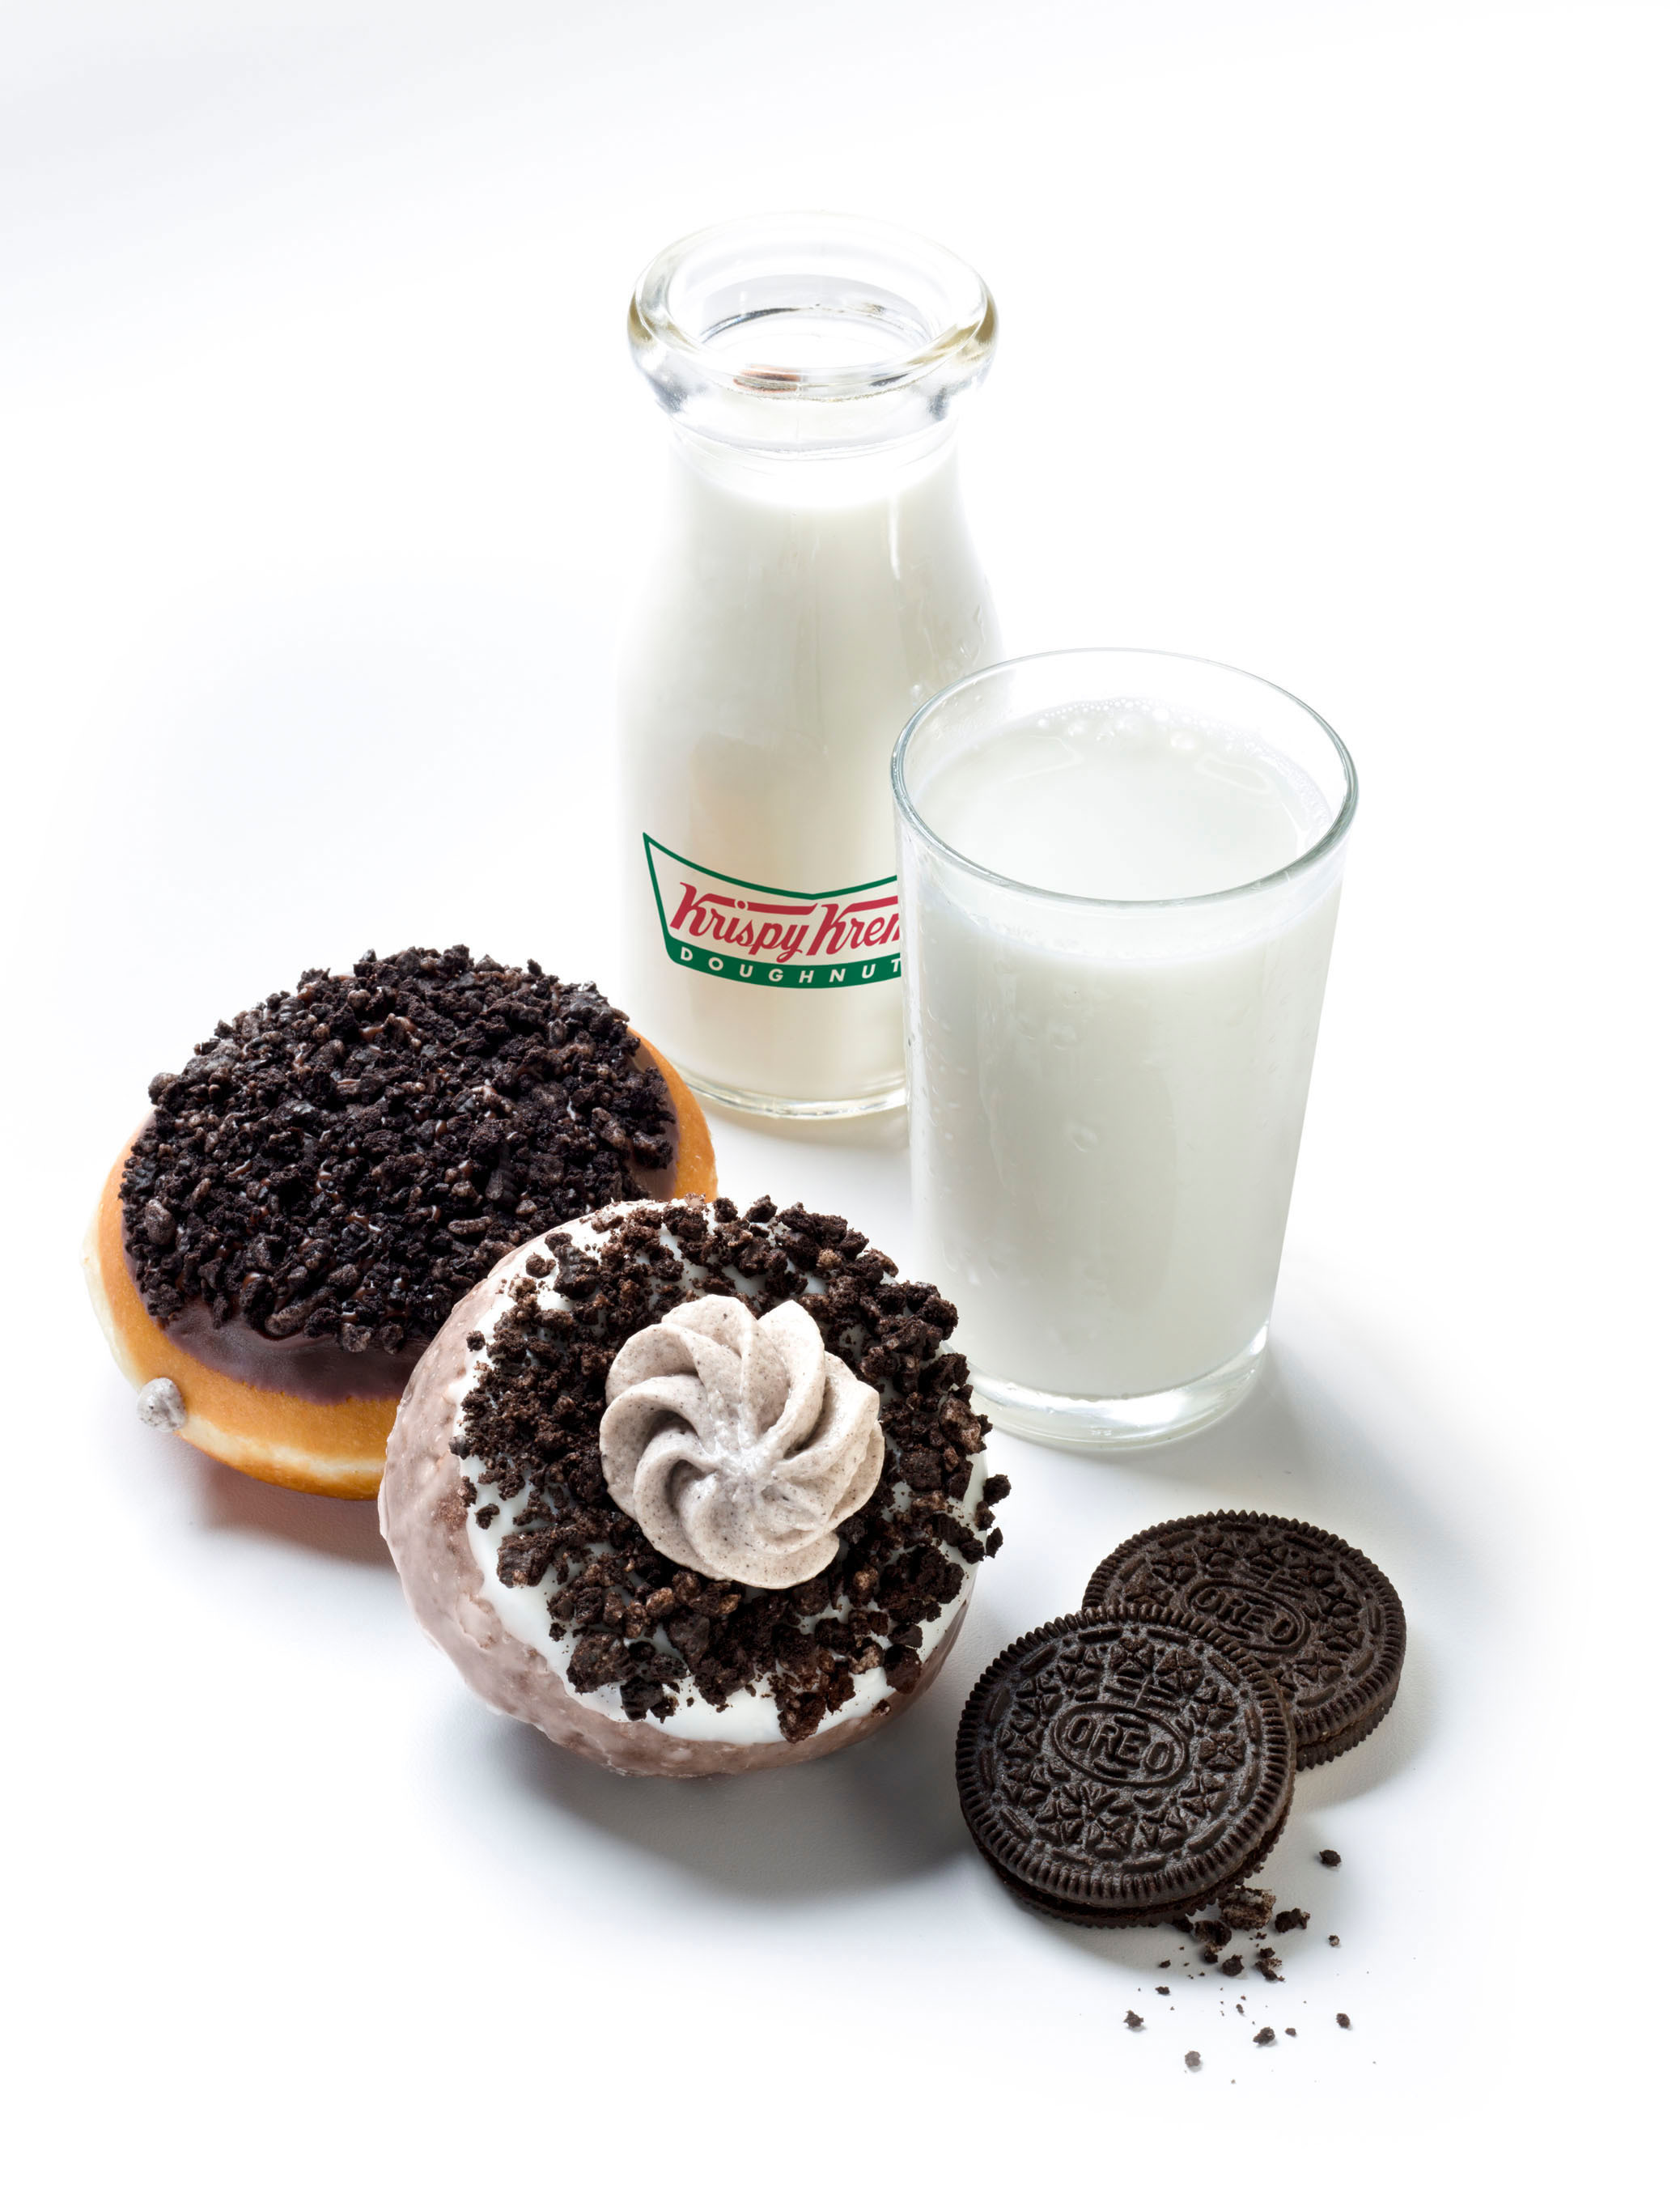 Your sweet dreams have come true! Krispy Kreme(R) - has created a new way to enjoy tasty doughnuts and cookies with two yumbelievable new treats topped and filled - with OREO(R) goodness. Cookies and KREME(TM) Doughnut Made with OREO and Cookies and KREME(TM) Cake Doughnut Made with OREO are available now through April 21st at participating Krispy Kreme locations in the US. Visit KrispyKReme.com for more info. (PRNewsFoto/Krispy Kreme Doughnut Corporation) (PRNewsFoto/KRISPY KREME DOUGHNUT CORPORA...)